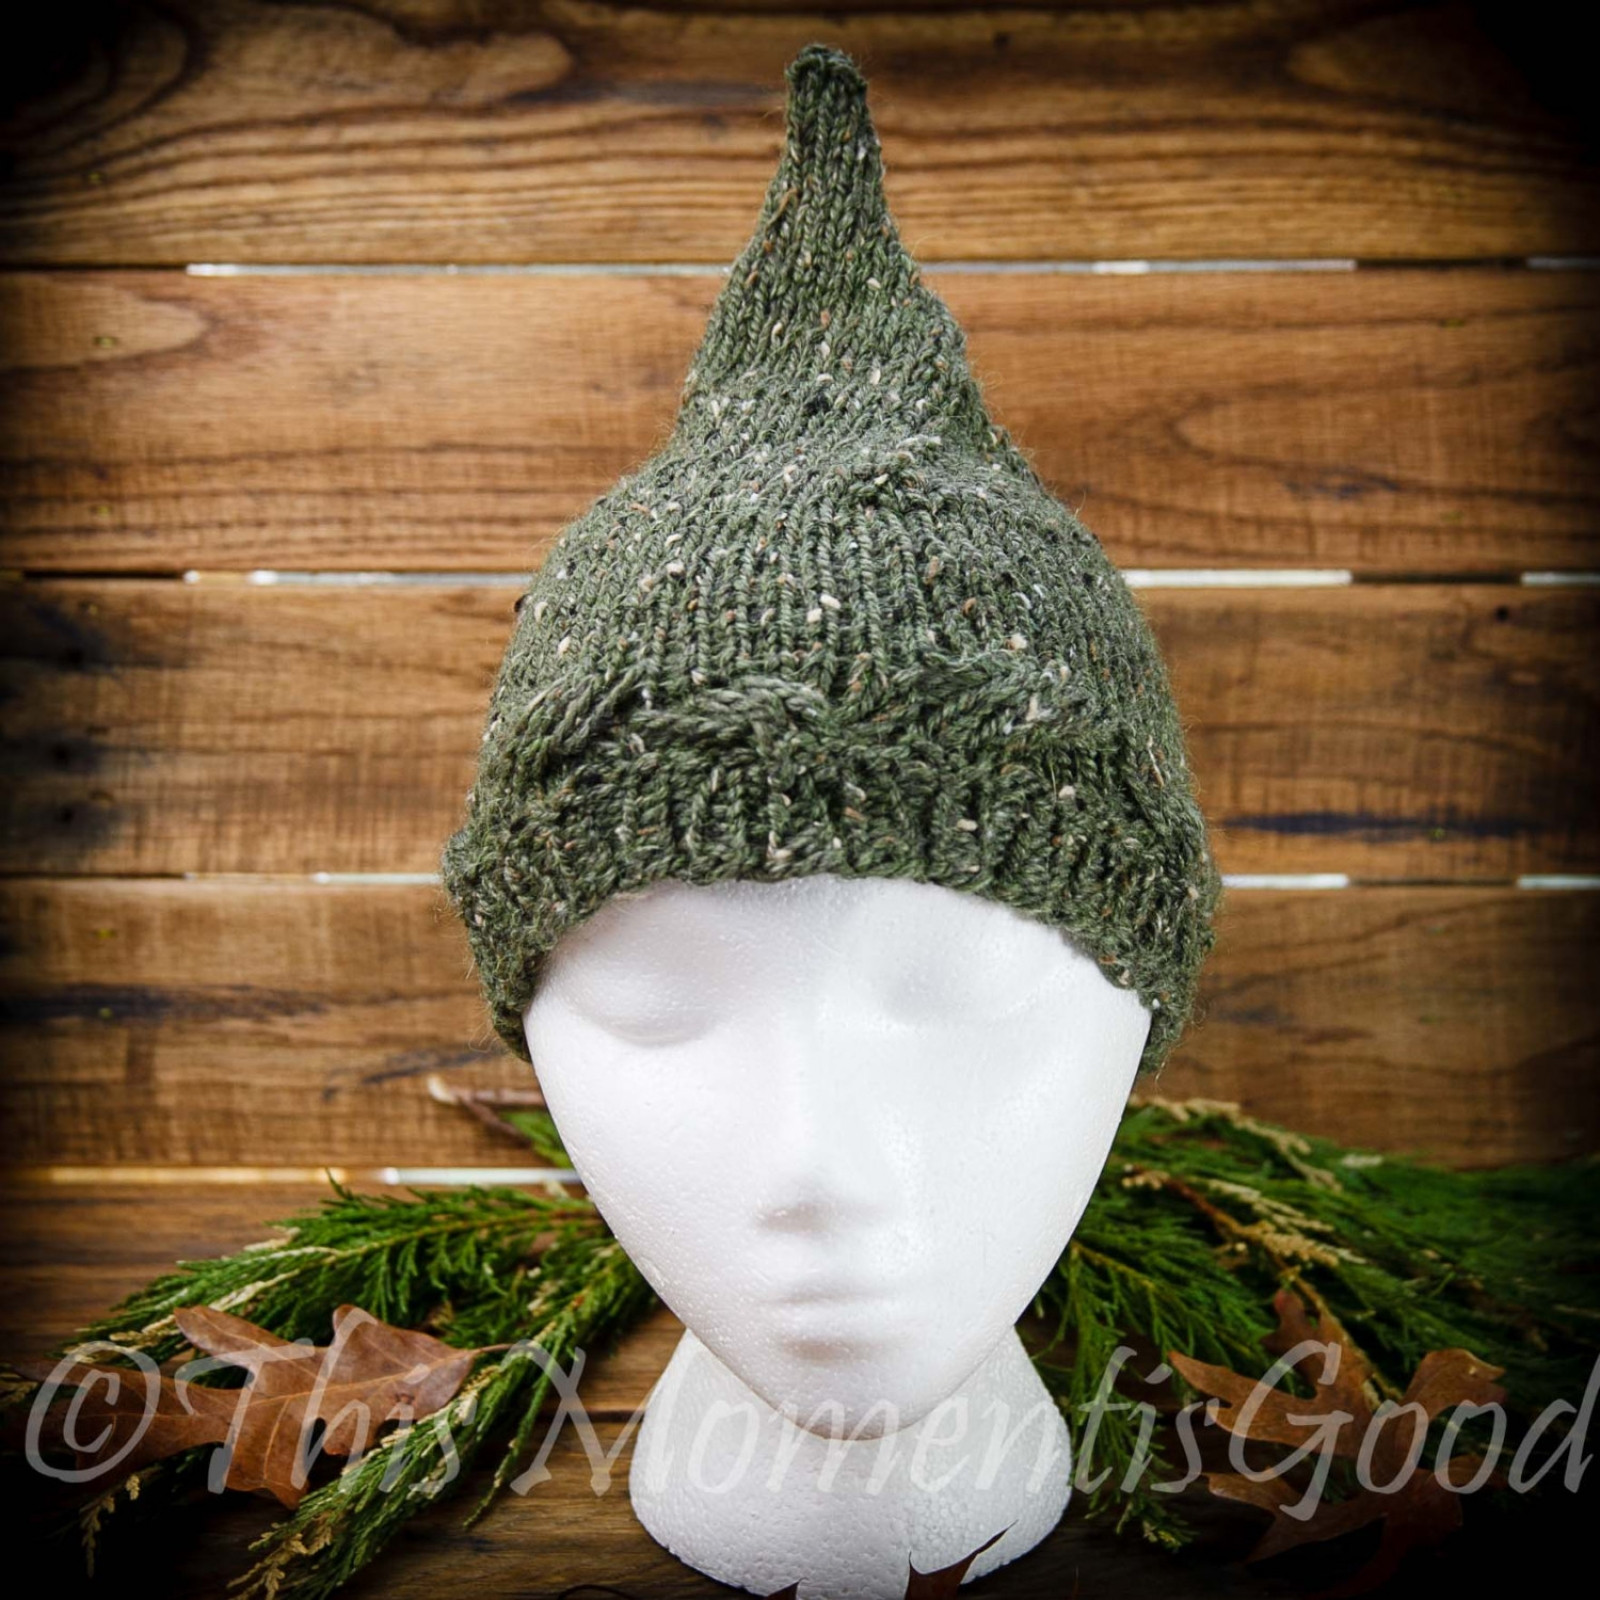 Hat Loom Awesome Loom Knit Pixie Hat Pattern Ladies Teen Pixie Hat Elf Of Amazing 48 Pictures Hat Loom